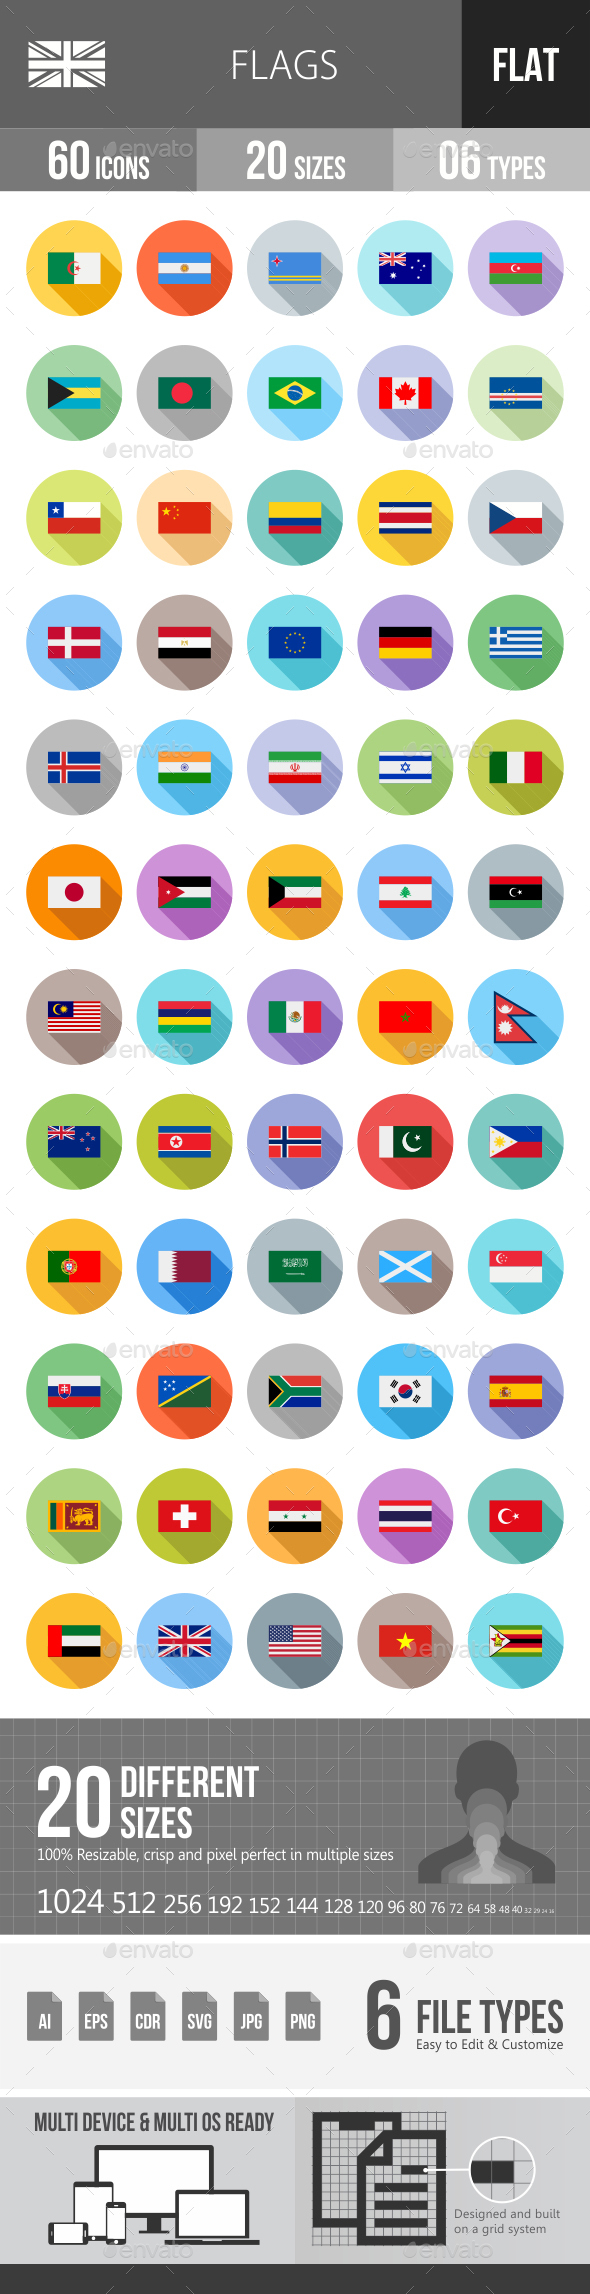 Flags Flat Shadowed Icons - Icons